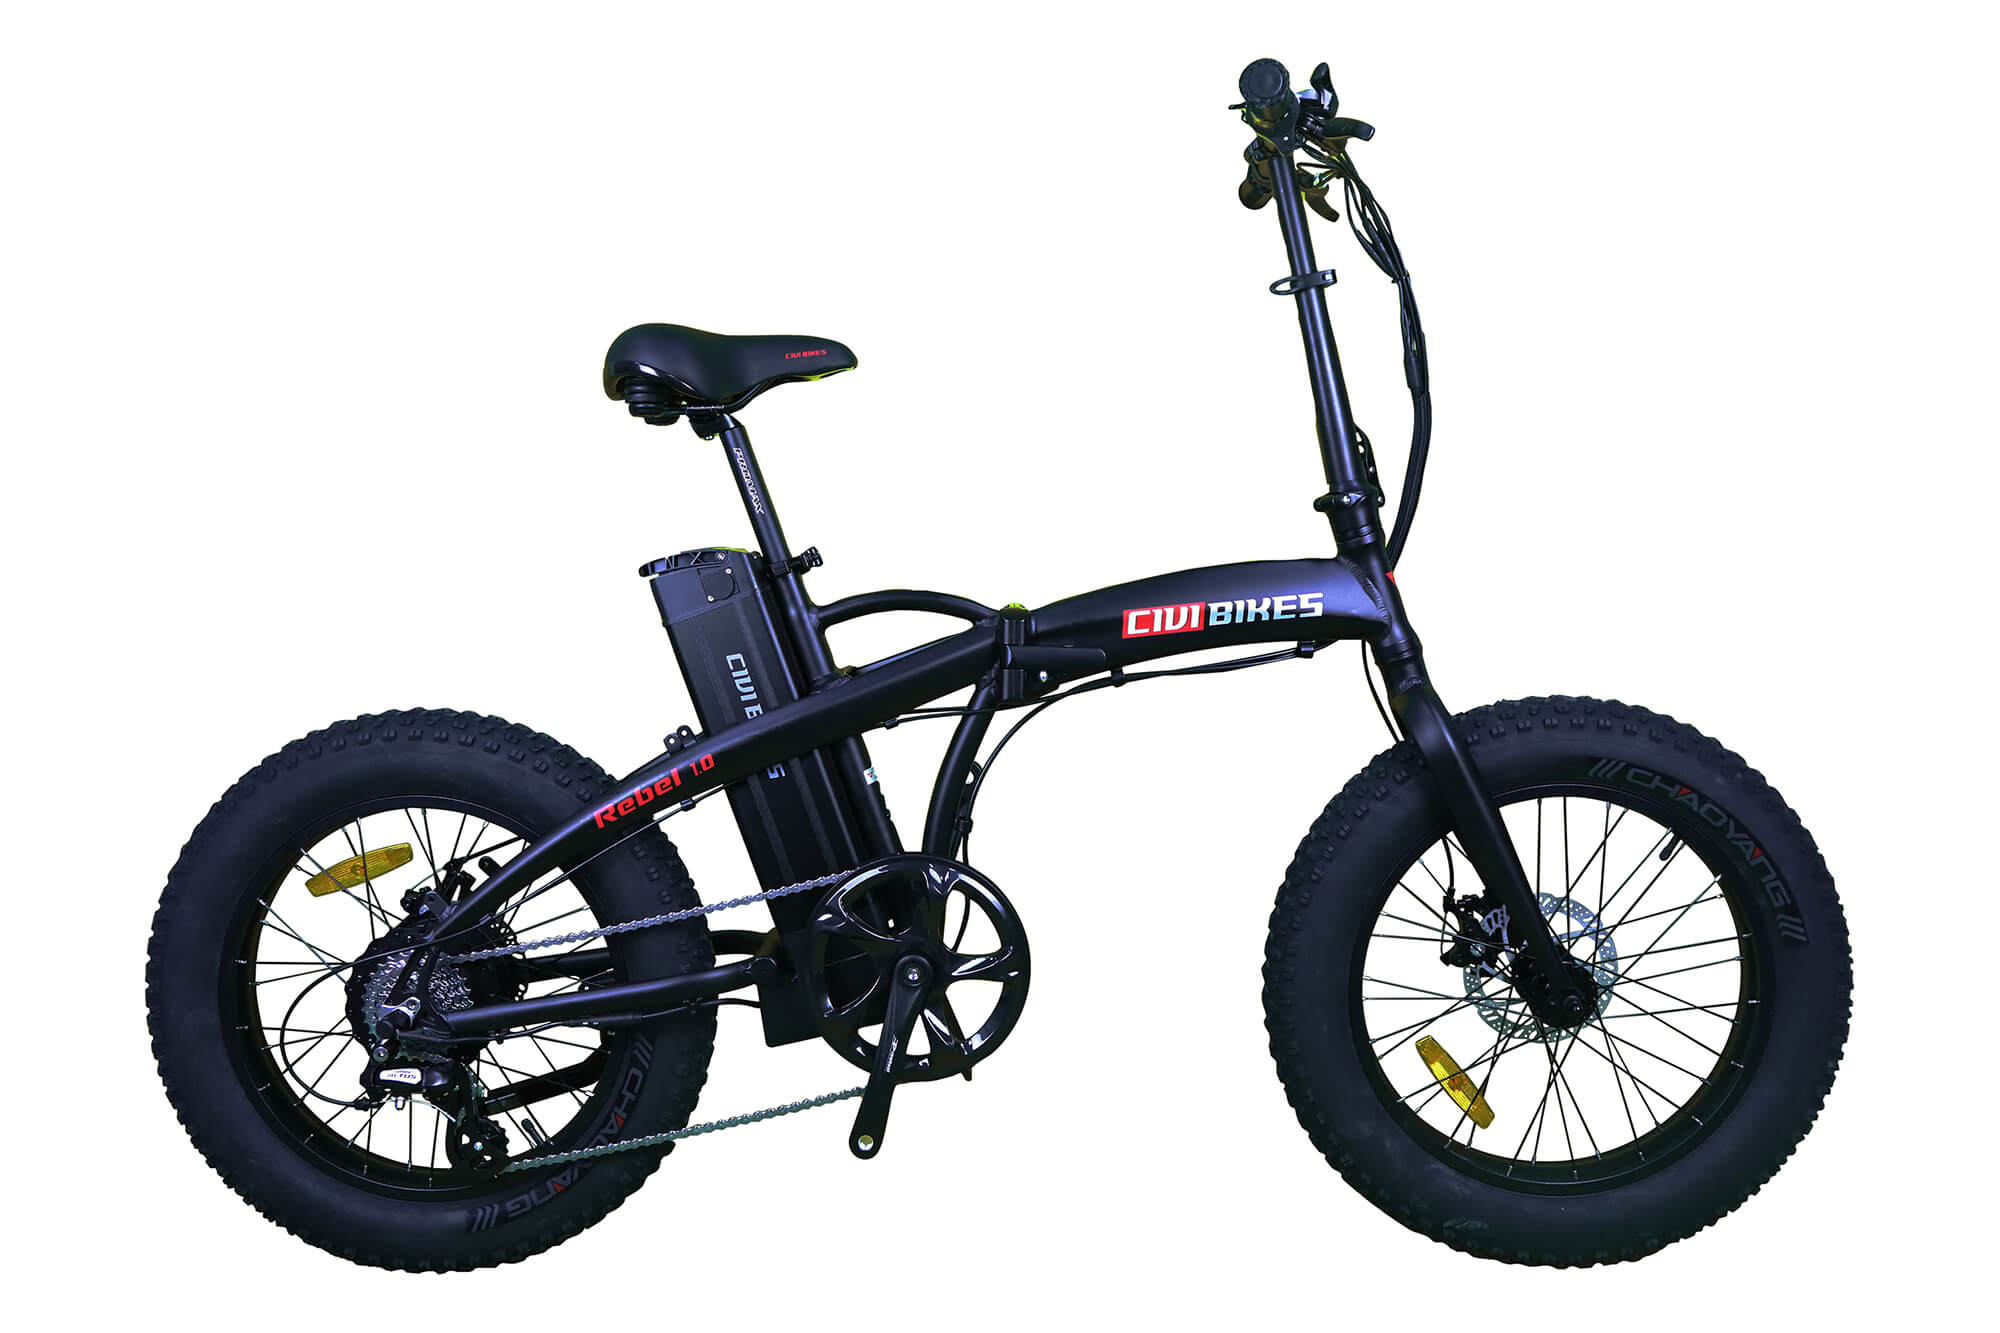 CIVI Bikes (REVI Bikes) Rebel 1.0 Fat Tire Folding Electric Bike